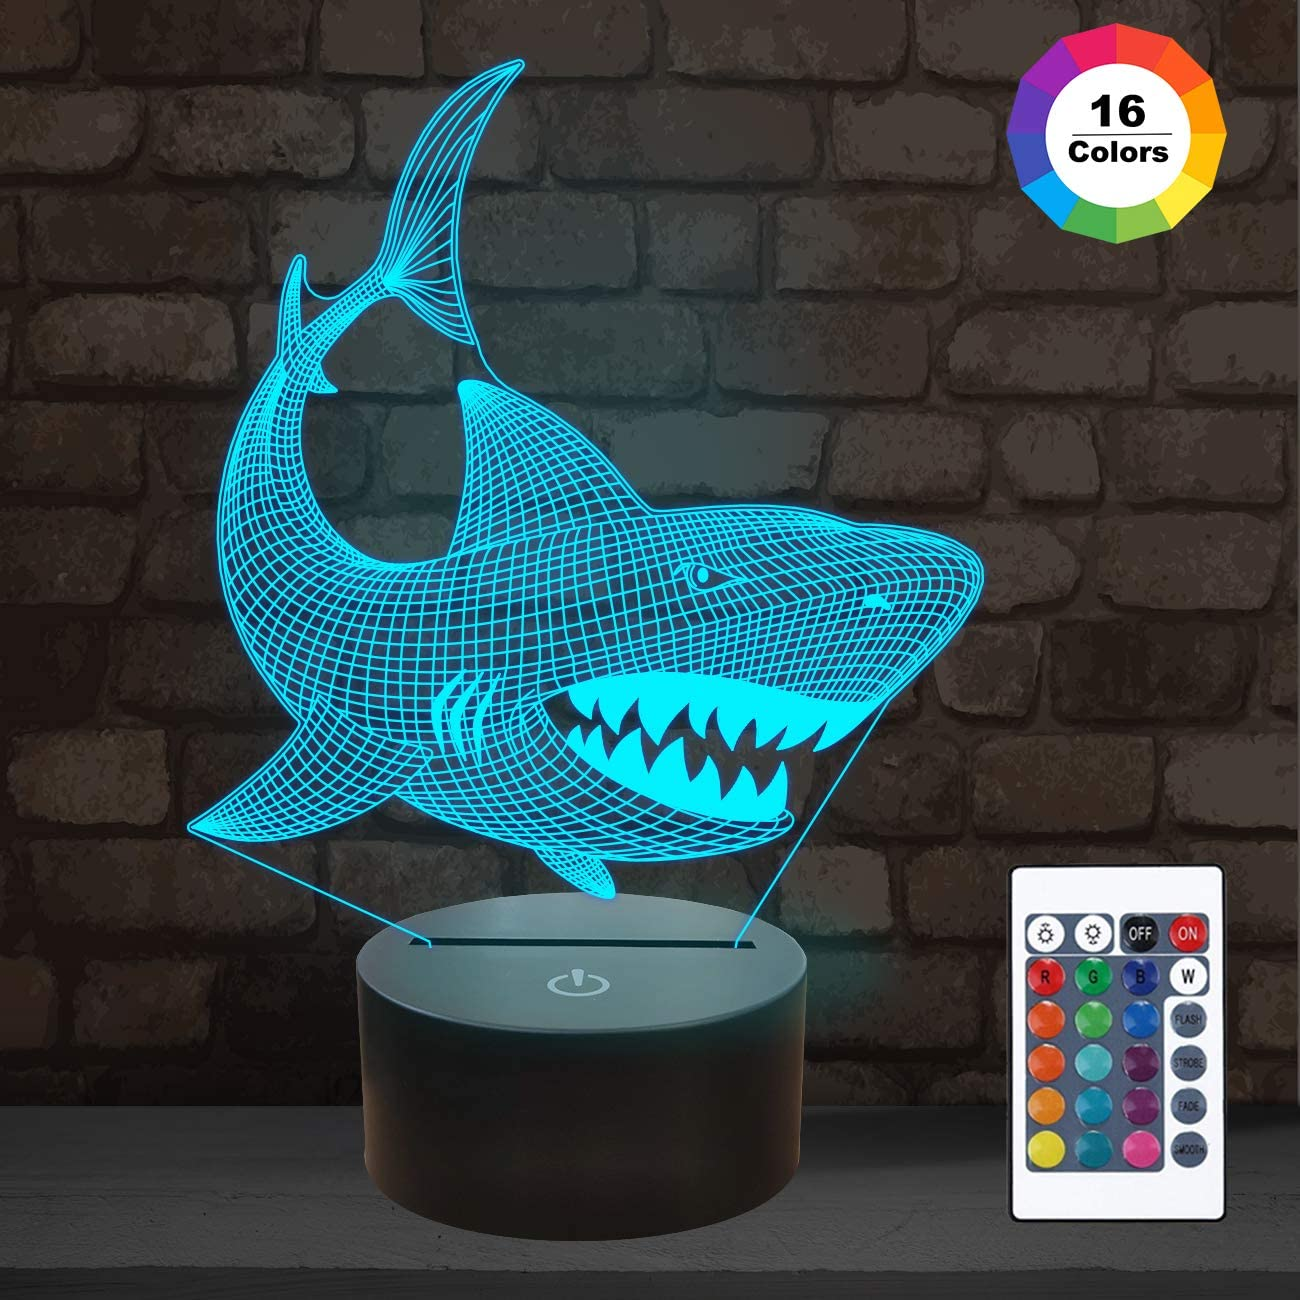 Shark 3D Illusion Night Light Animal Touch Table Desk Lamp, with Remote Control 16 Colors Optical USB LED Nightlight for Kids Holiday Gift Room Decoration